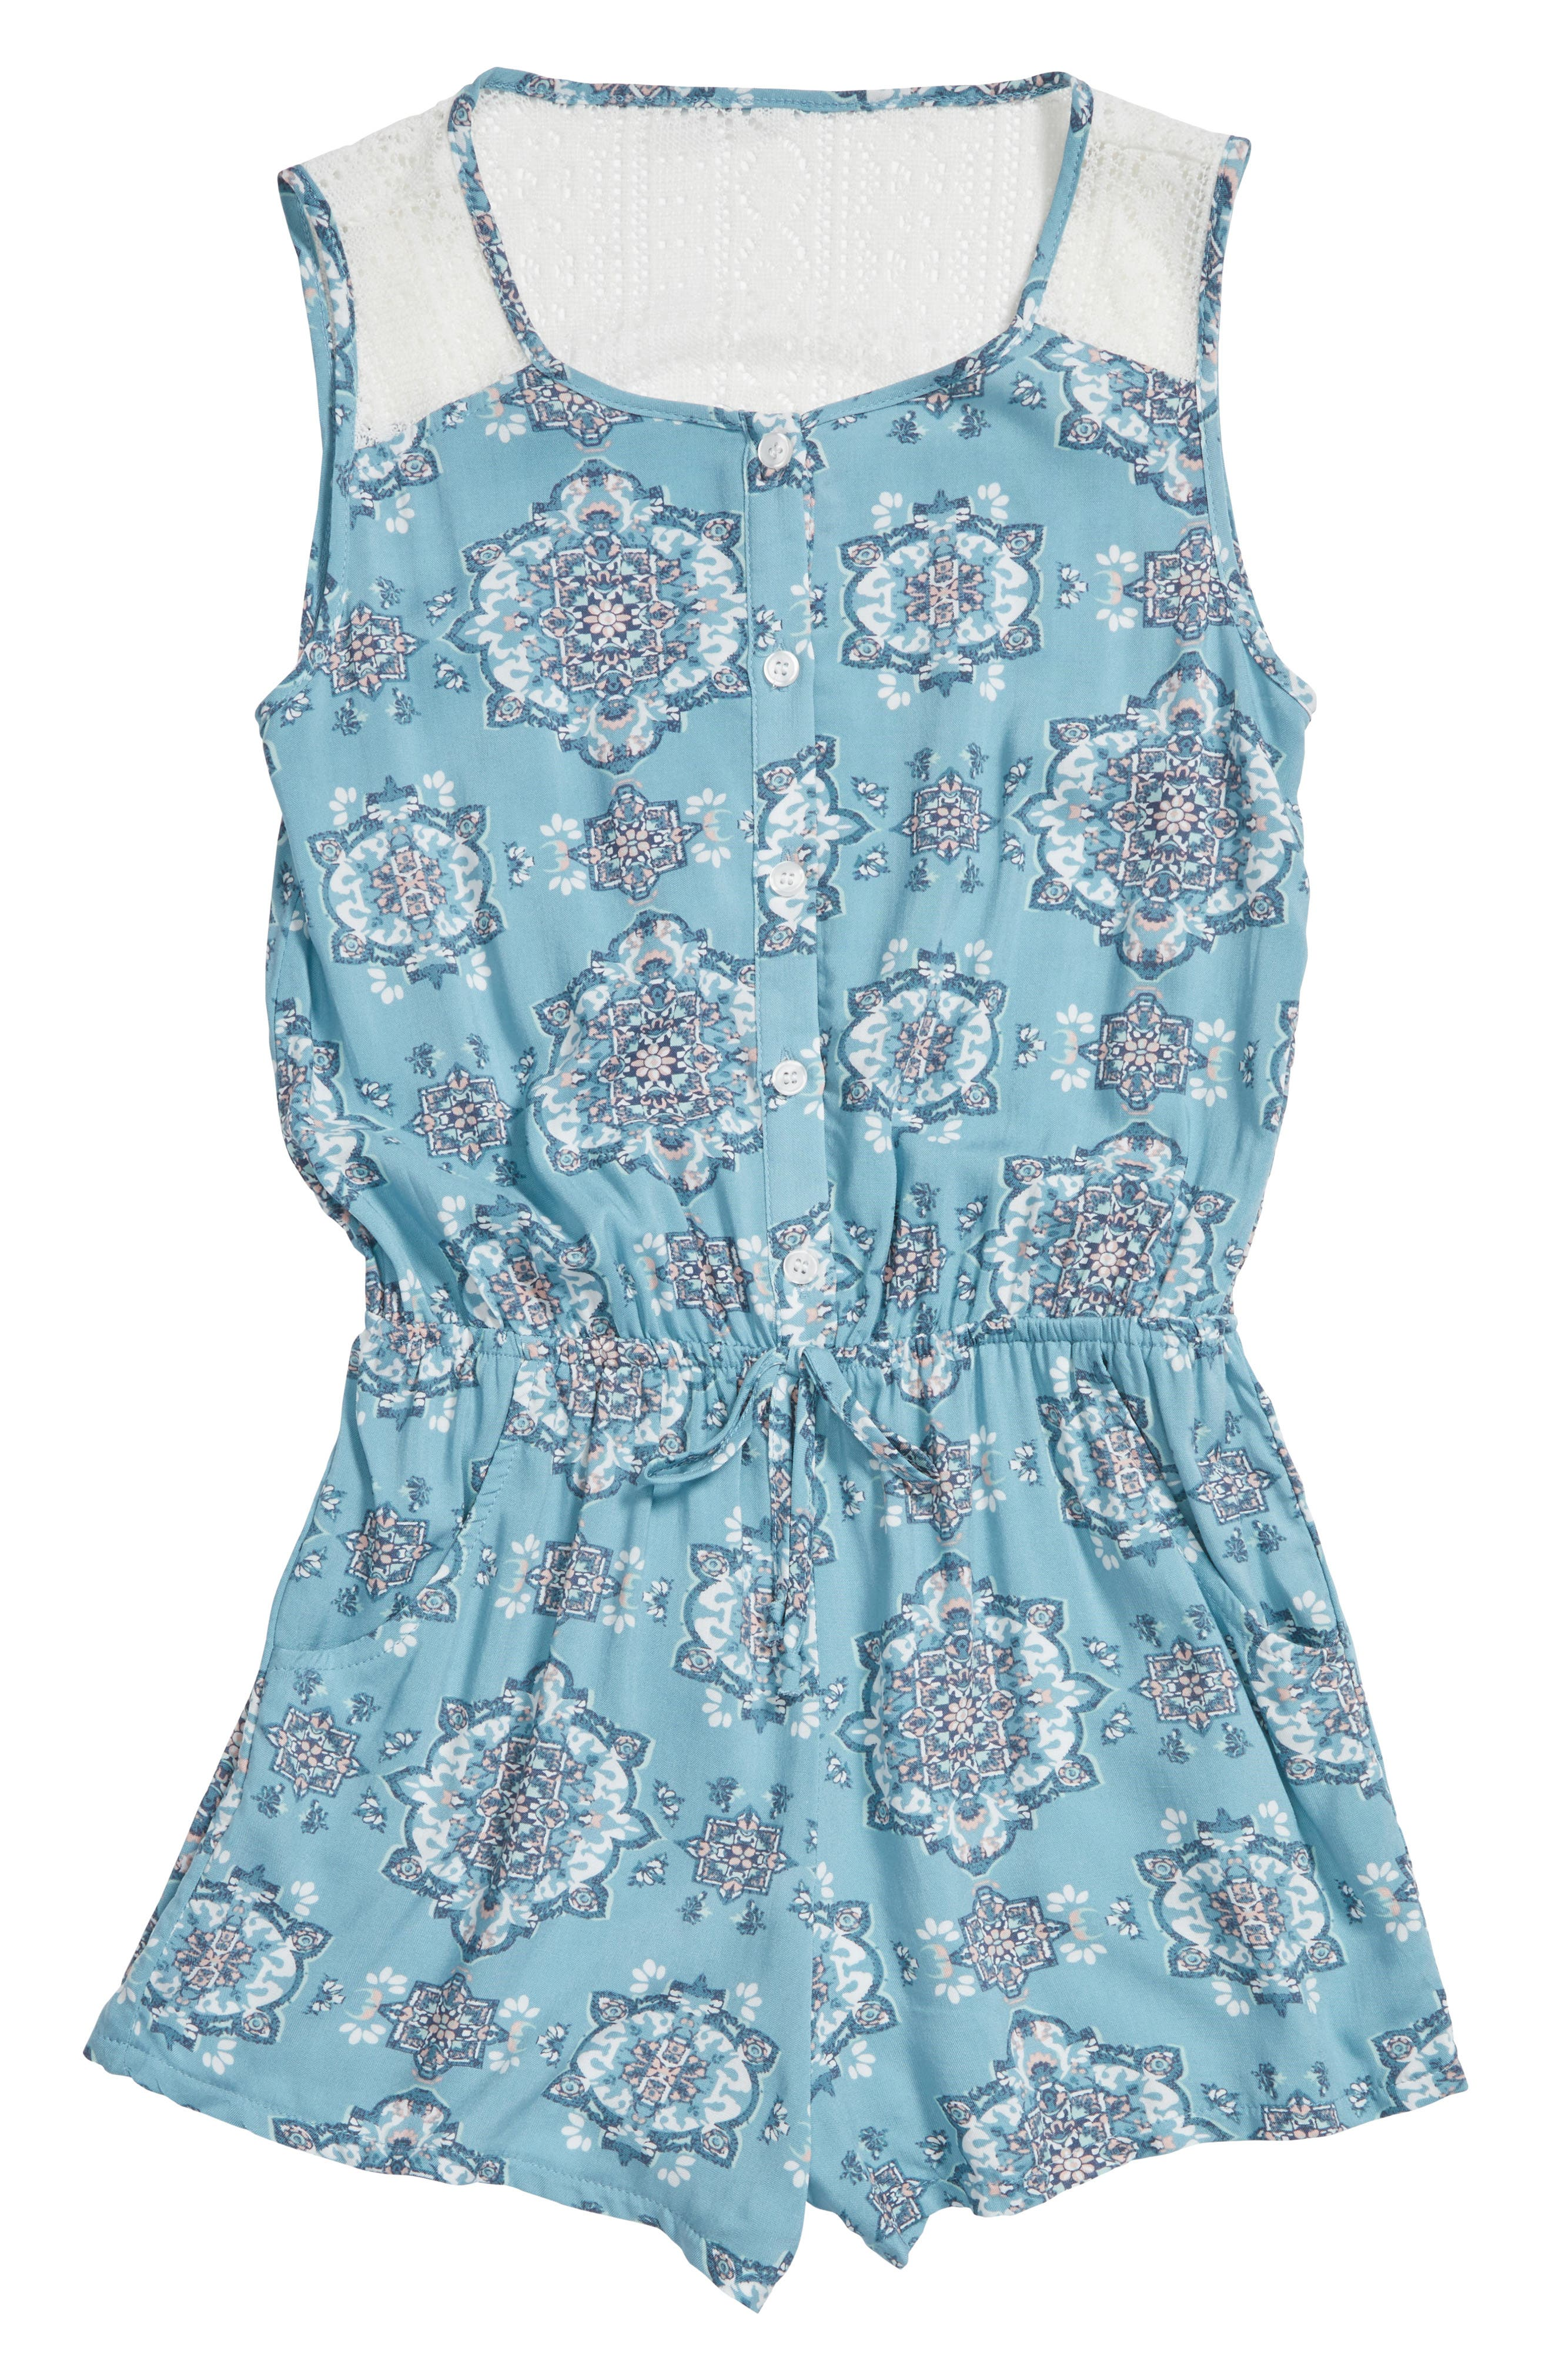 Alternate Image 1 Selected - Mia Chica Lace Back Romper (Big Girls)